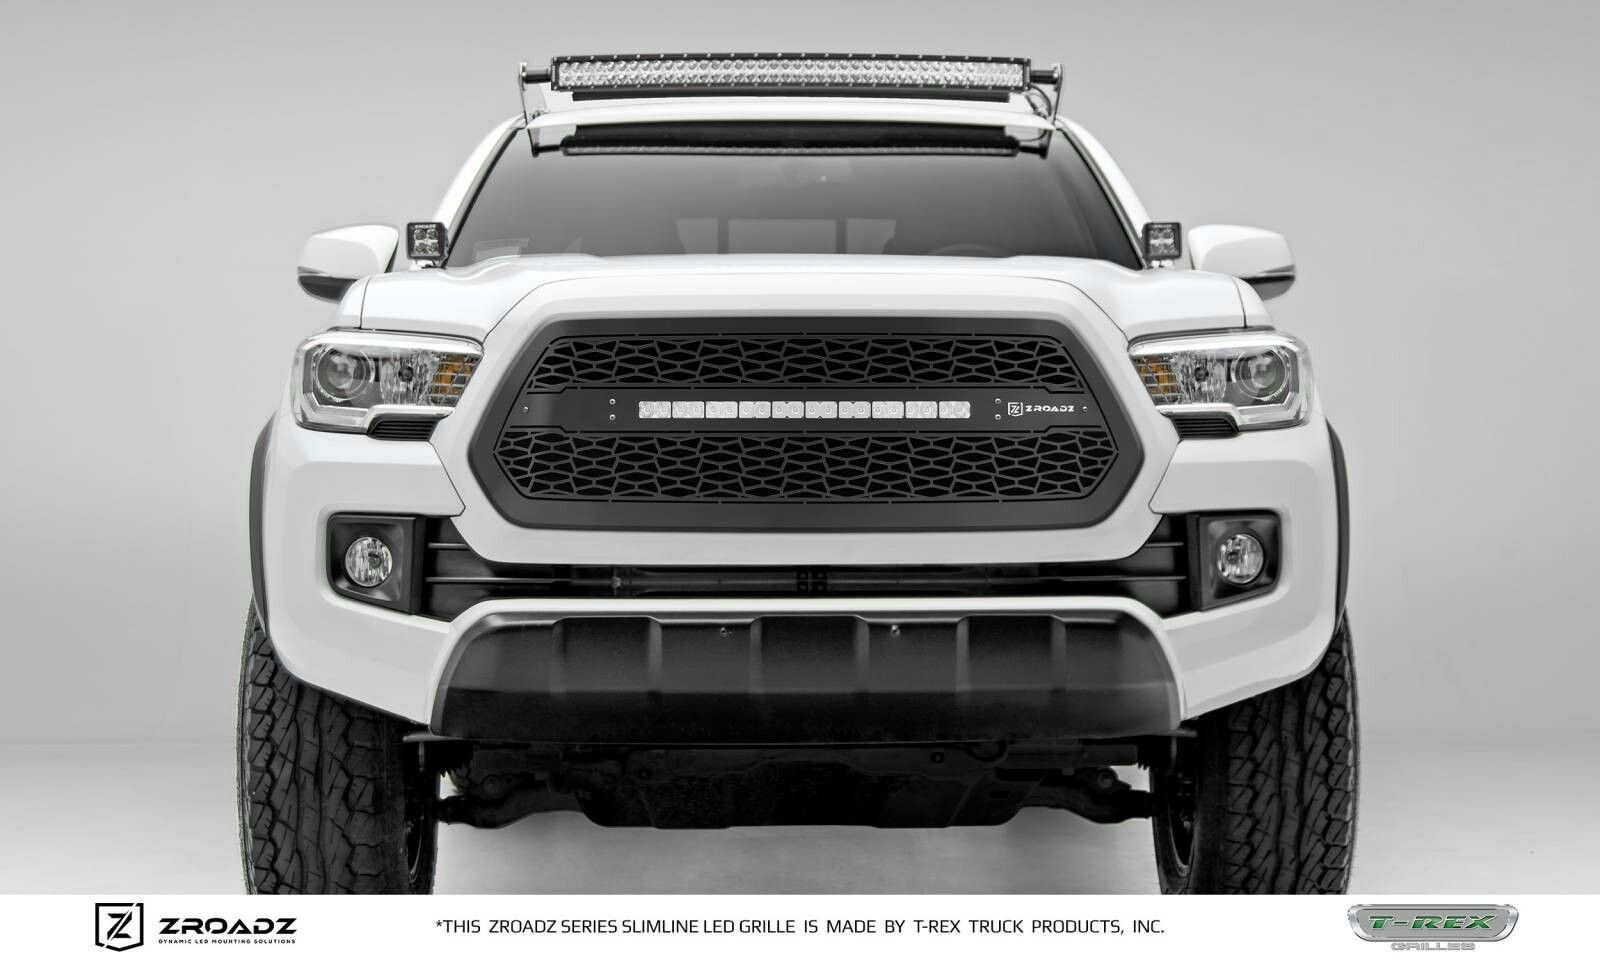 8bb91fac8874c95b38cd2ae1b9ac5157 2016 tacoma trd off road with z roadz led grille tacoma trd  at gsmx.co